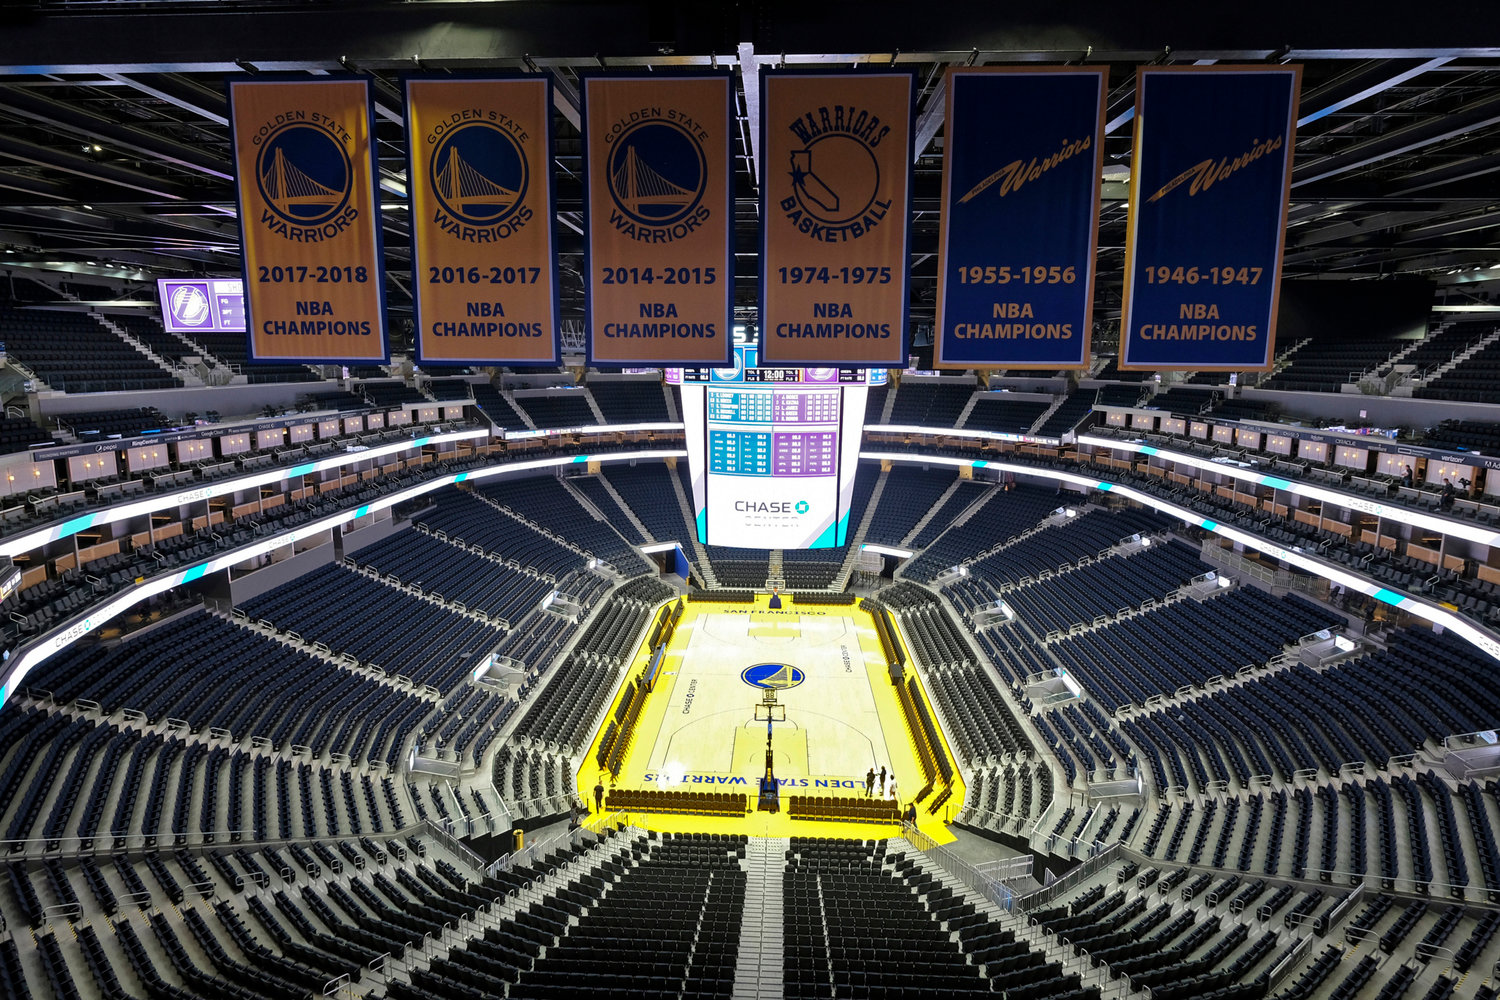 FILE - In this Aug. 26, 2019, file photo, the Golden State Warriors championship banners hang above the seating and basketball court at the Chase Center in San Francisco. The NBA became the first major American sports league to suspend play because of the coronavirus pandemic on Wednesday.